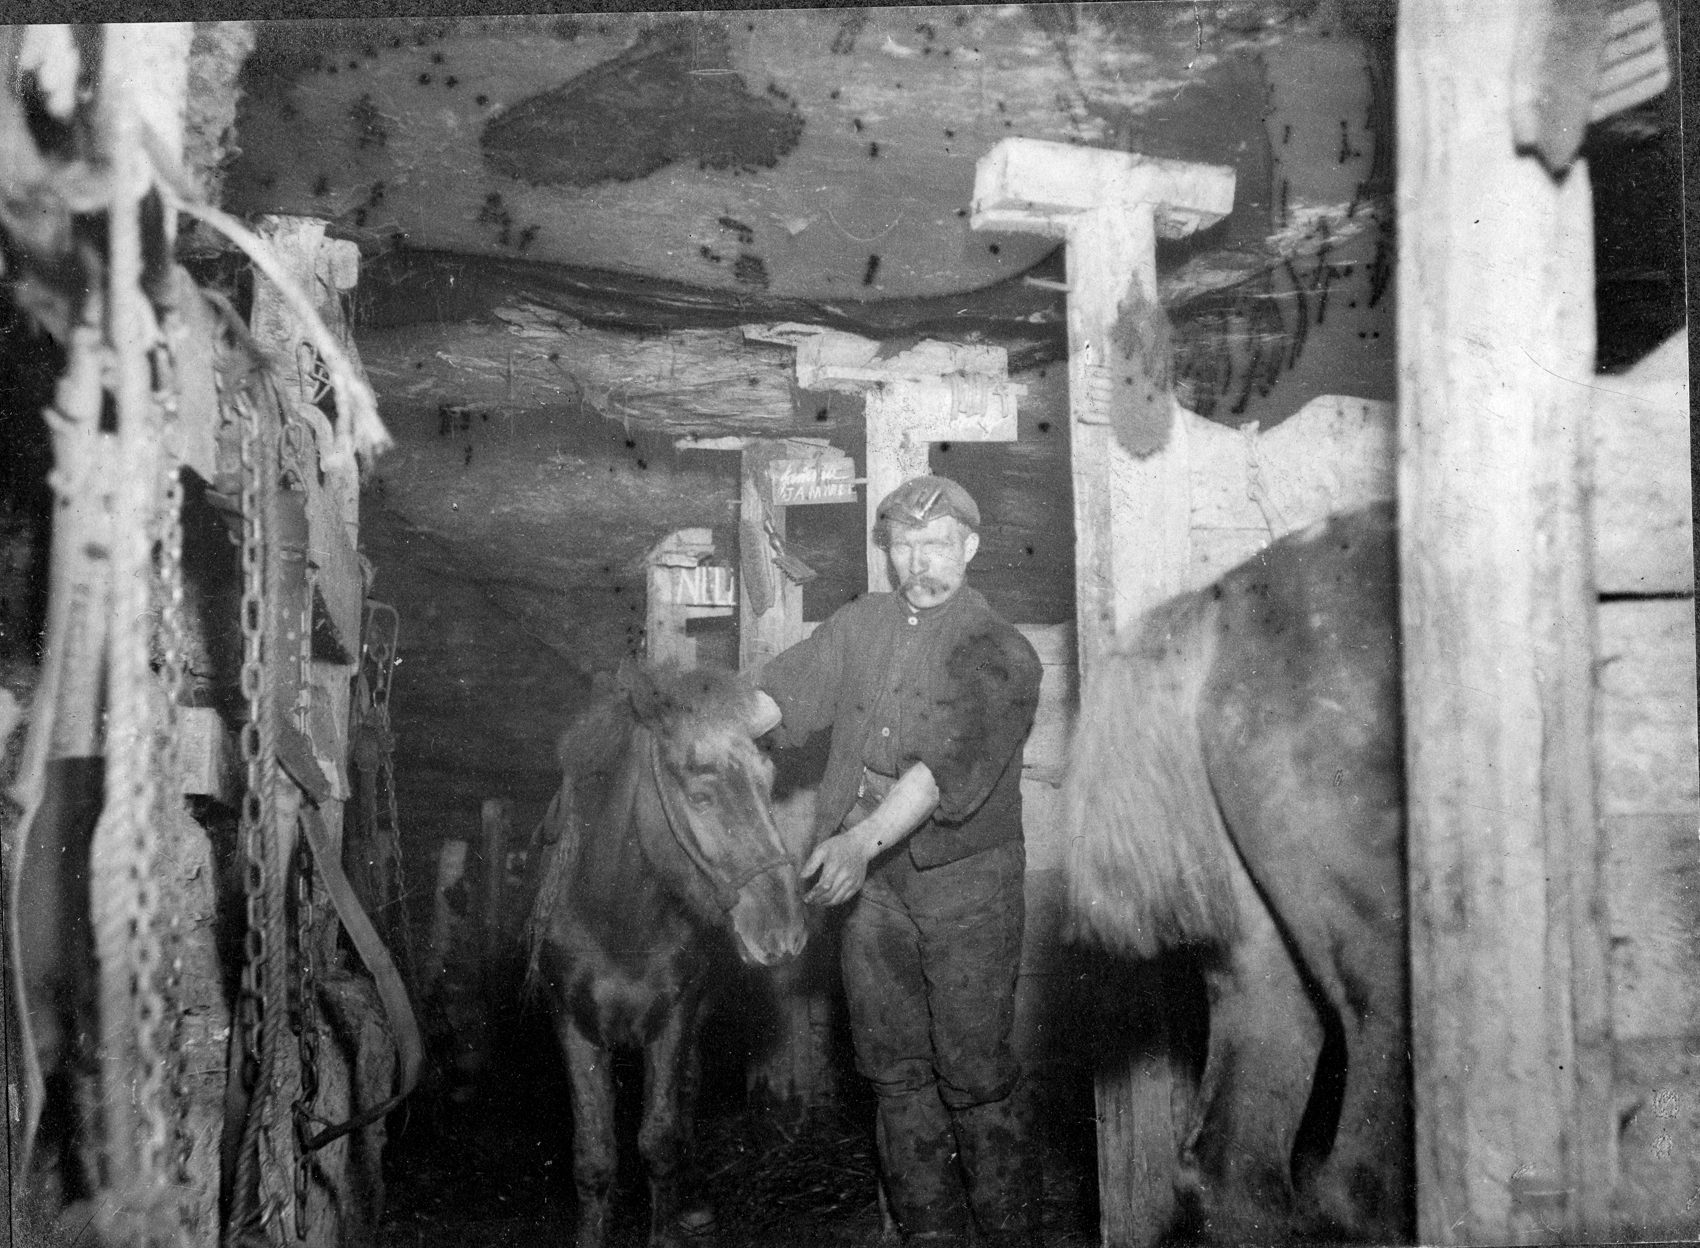 Underground stables for pit ponies at Camp Colliery in around 1910. You can see signs with the ponies' names on the stalls.